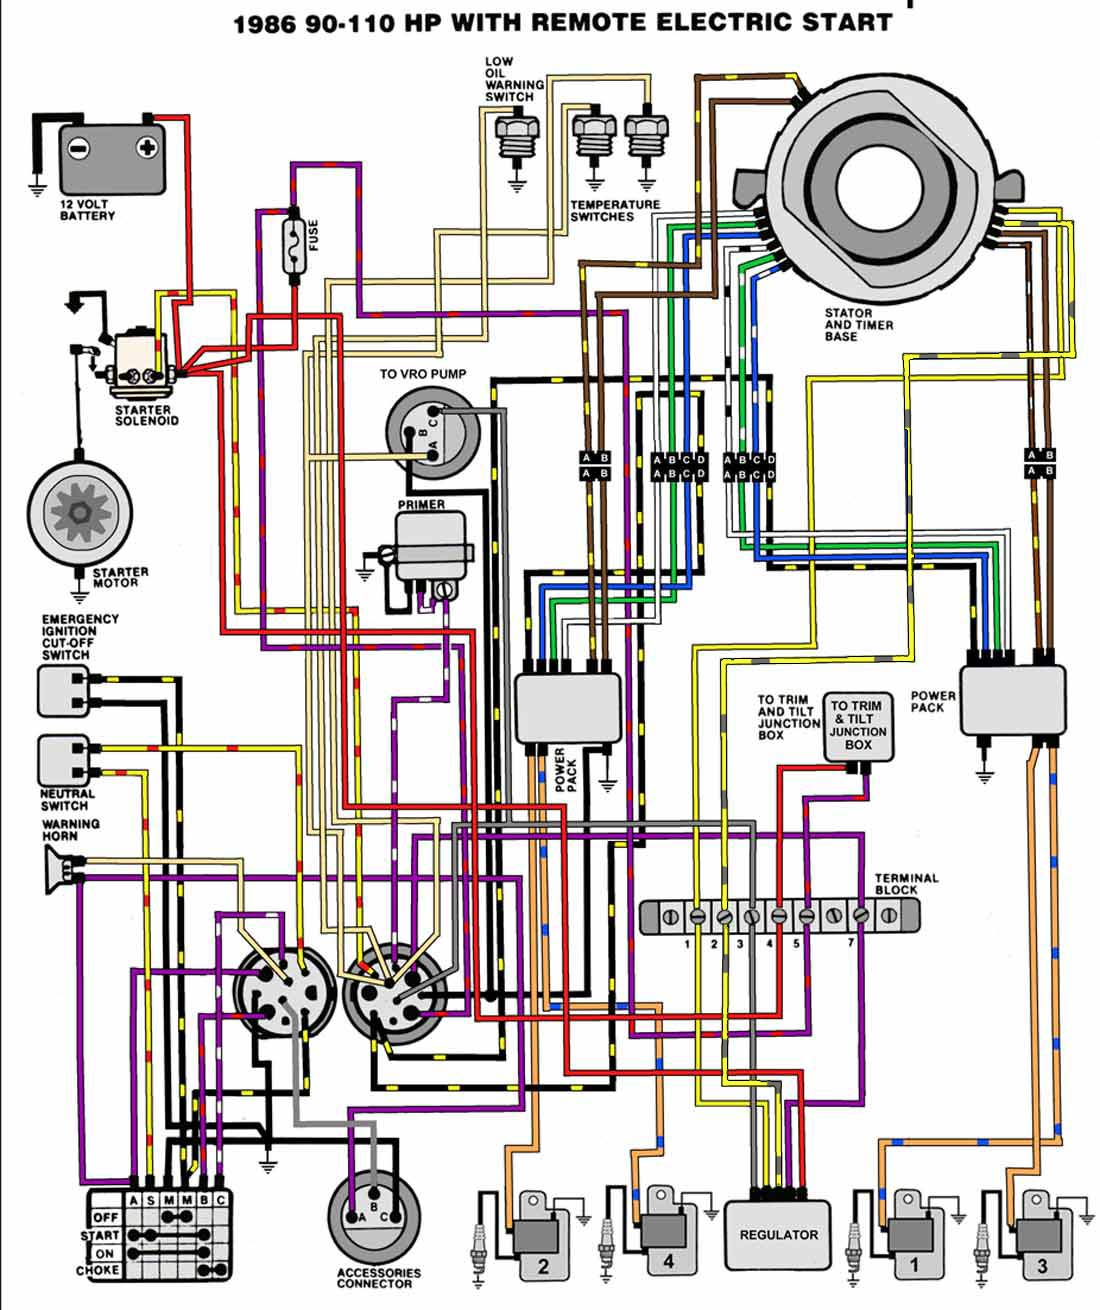 Yamaha 150 Wiring Diagram - Wiring Diagram Article